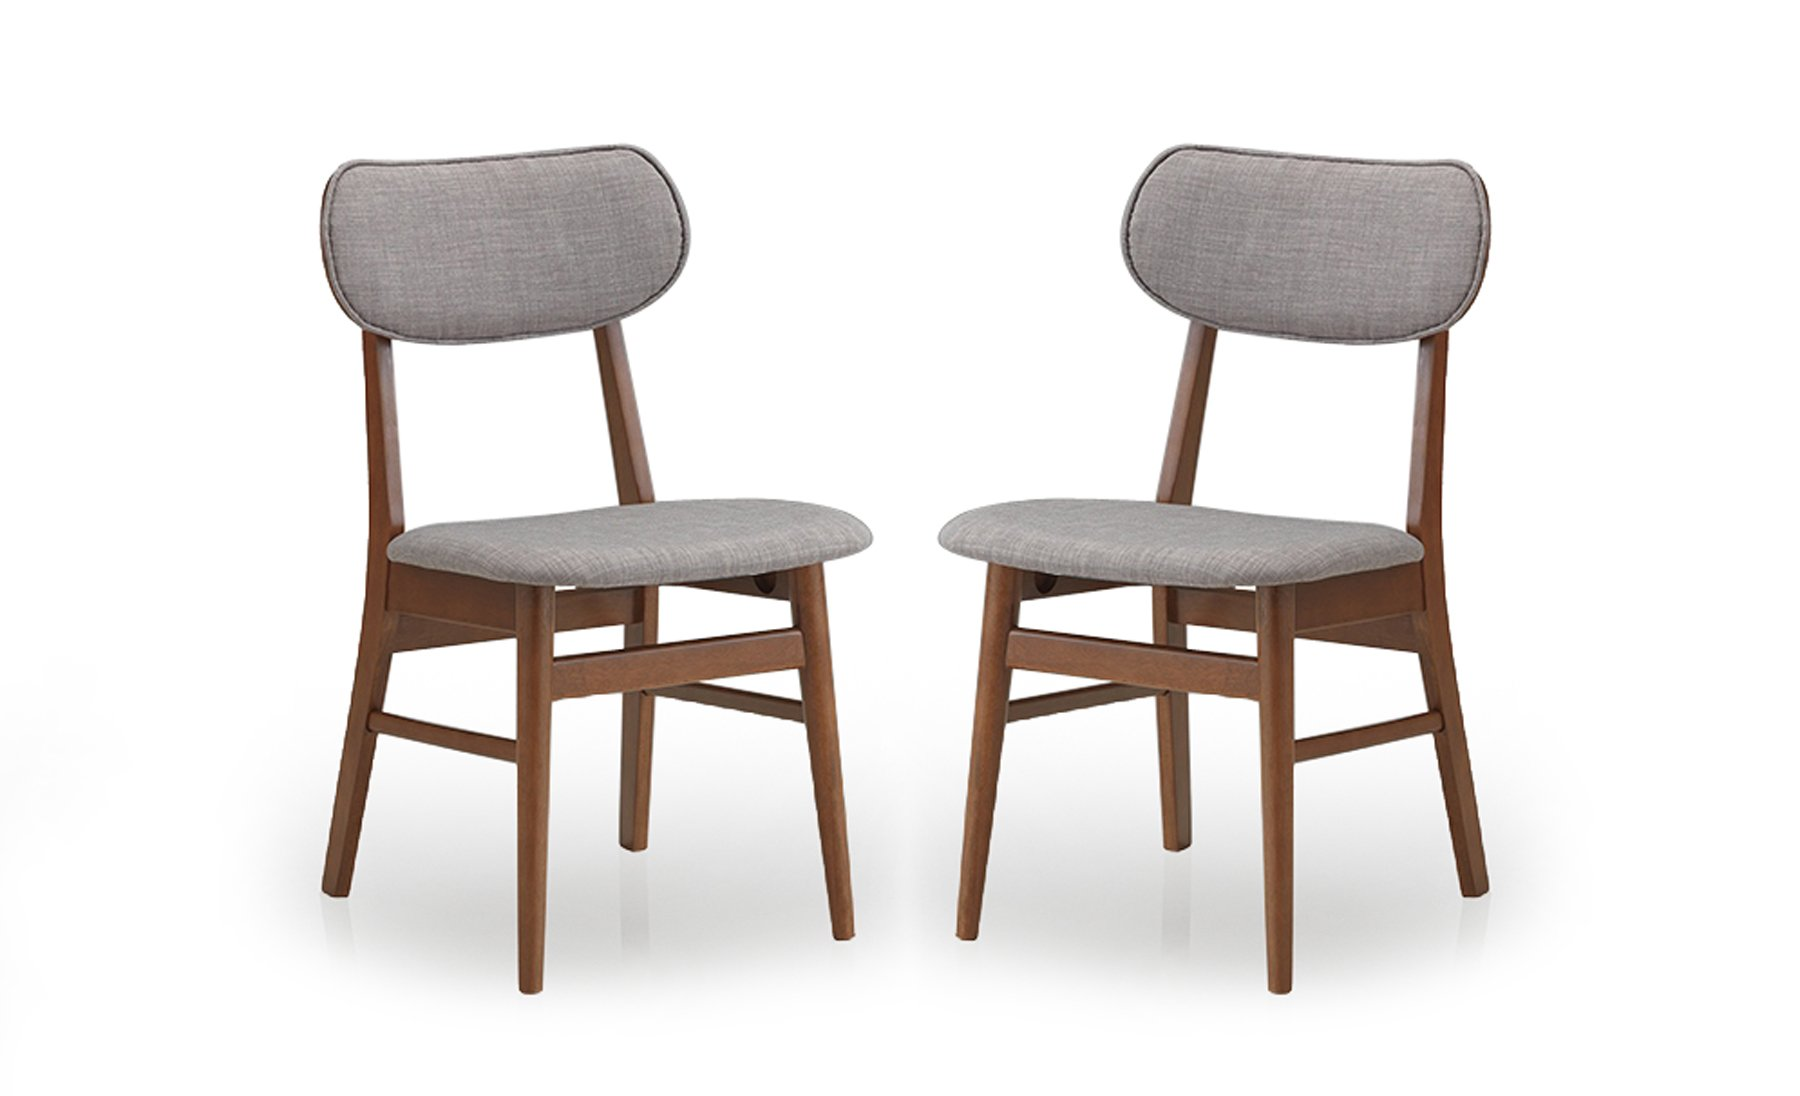 Baxton Studio Sacramento Mid-Century Dark Walnut Wood and Grey Faux Leather Dining Chairs (Set of 2) - Mid-Century design set of 2 dining chairs Solid rubber wood with veneer finishing Grey fabric upholstery with foam padding - kitchen-dining-room-furniture, kitchen-dining-room, kitchen-dining-room-chairs - 61ySZS%2BndAL -